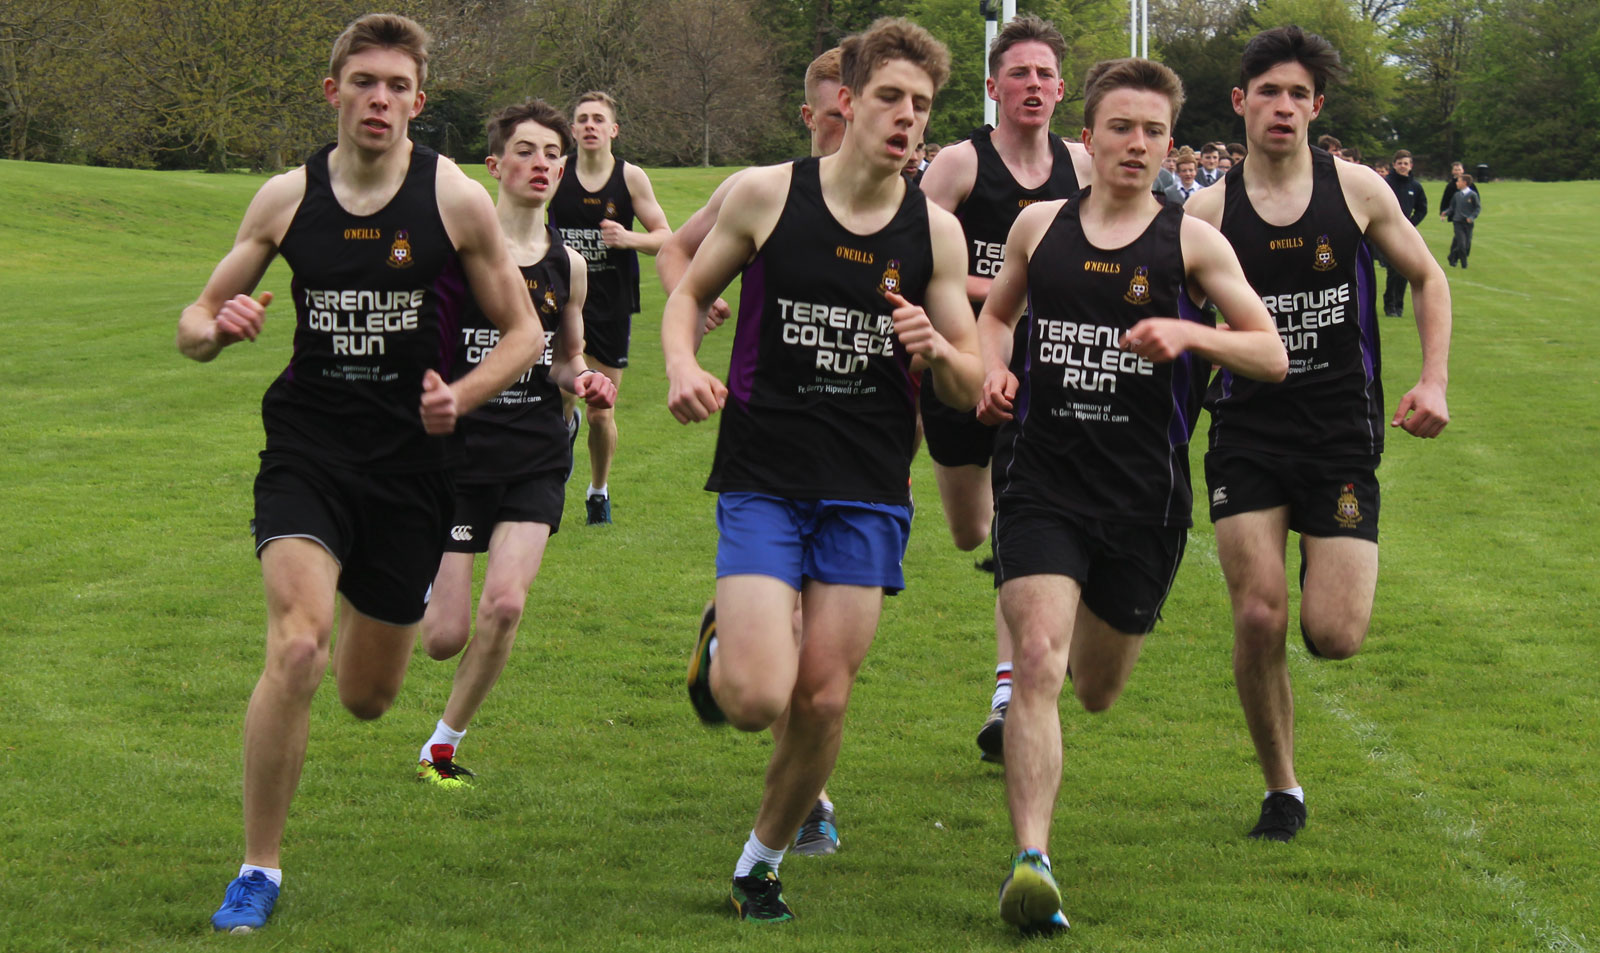 Terenure College Run